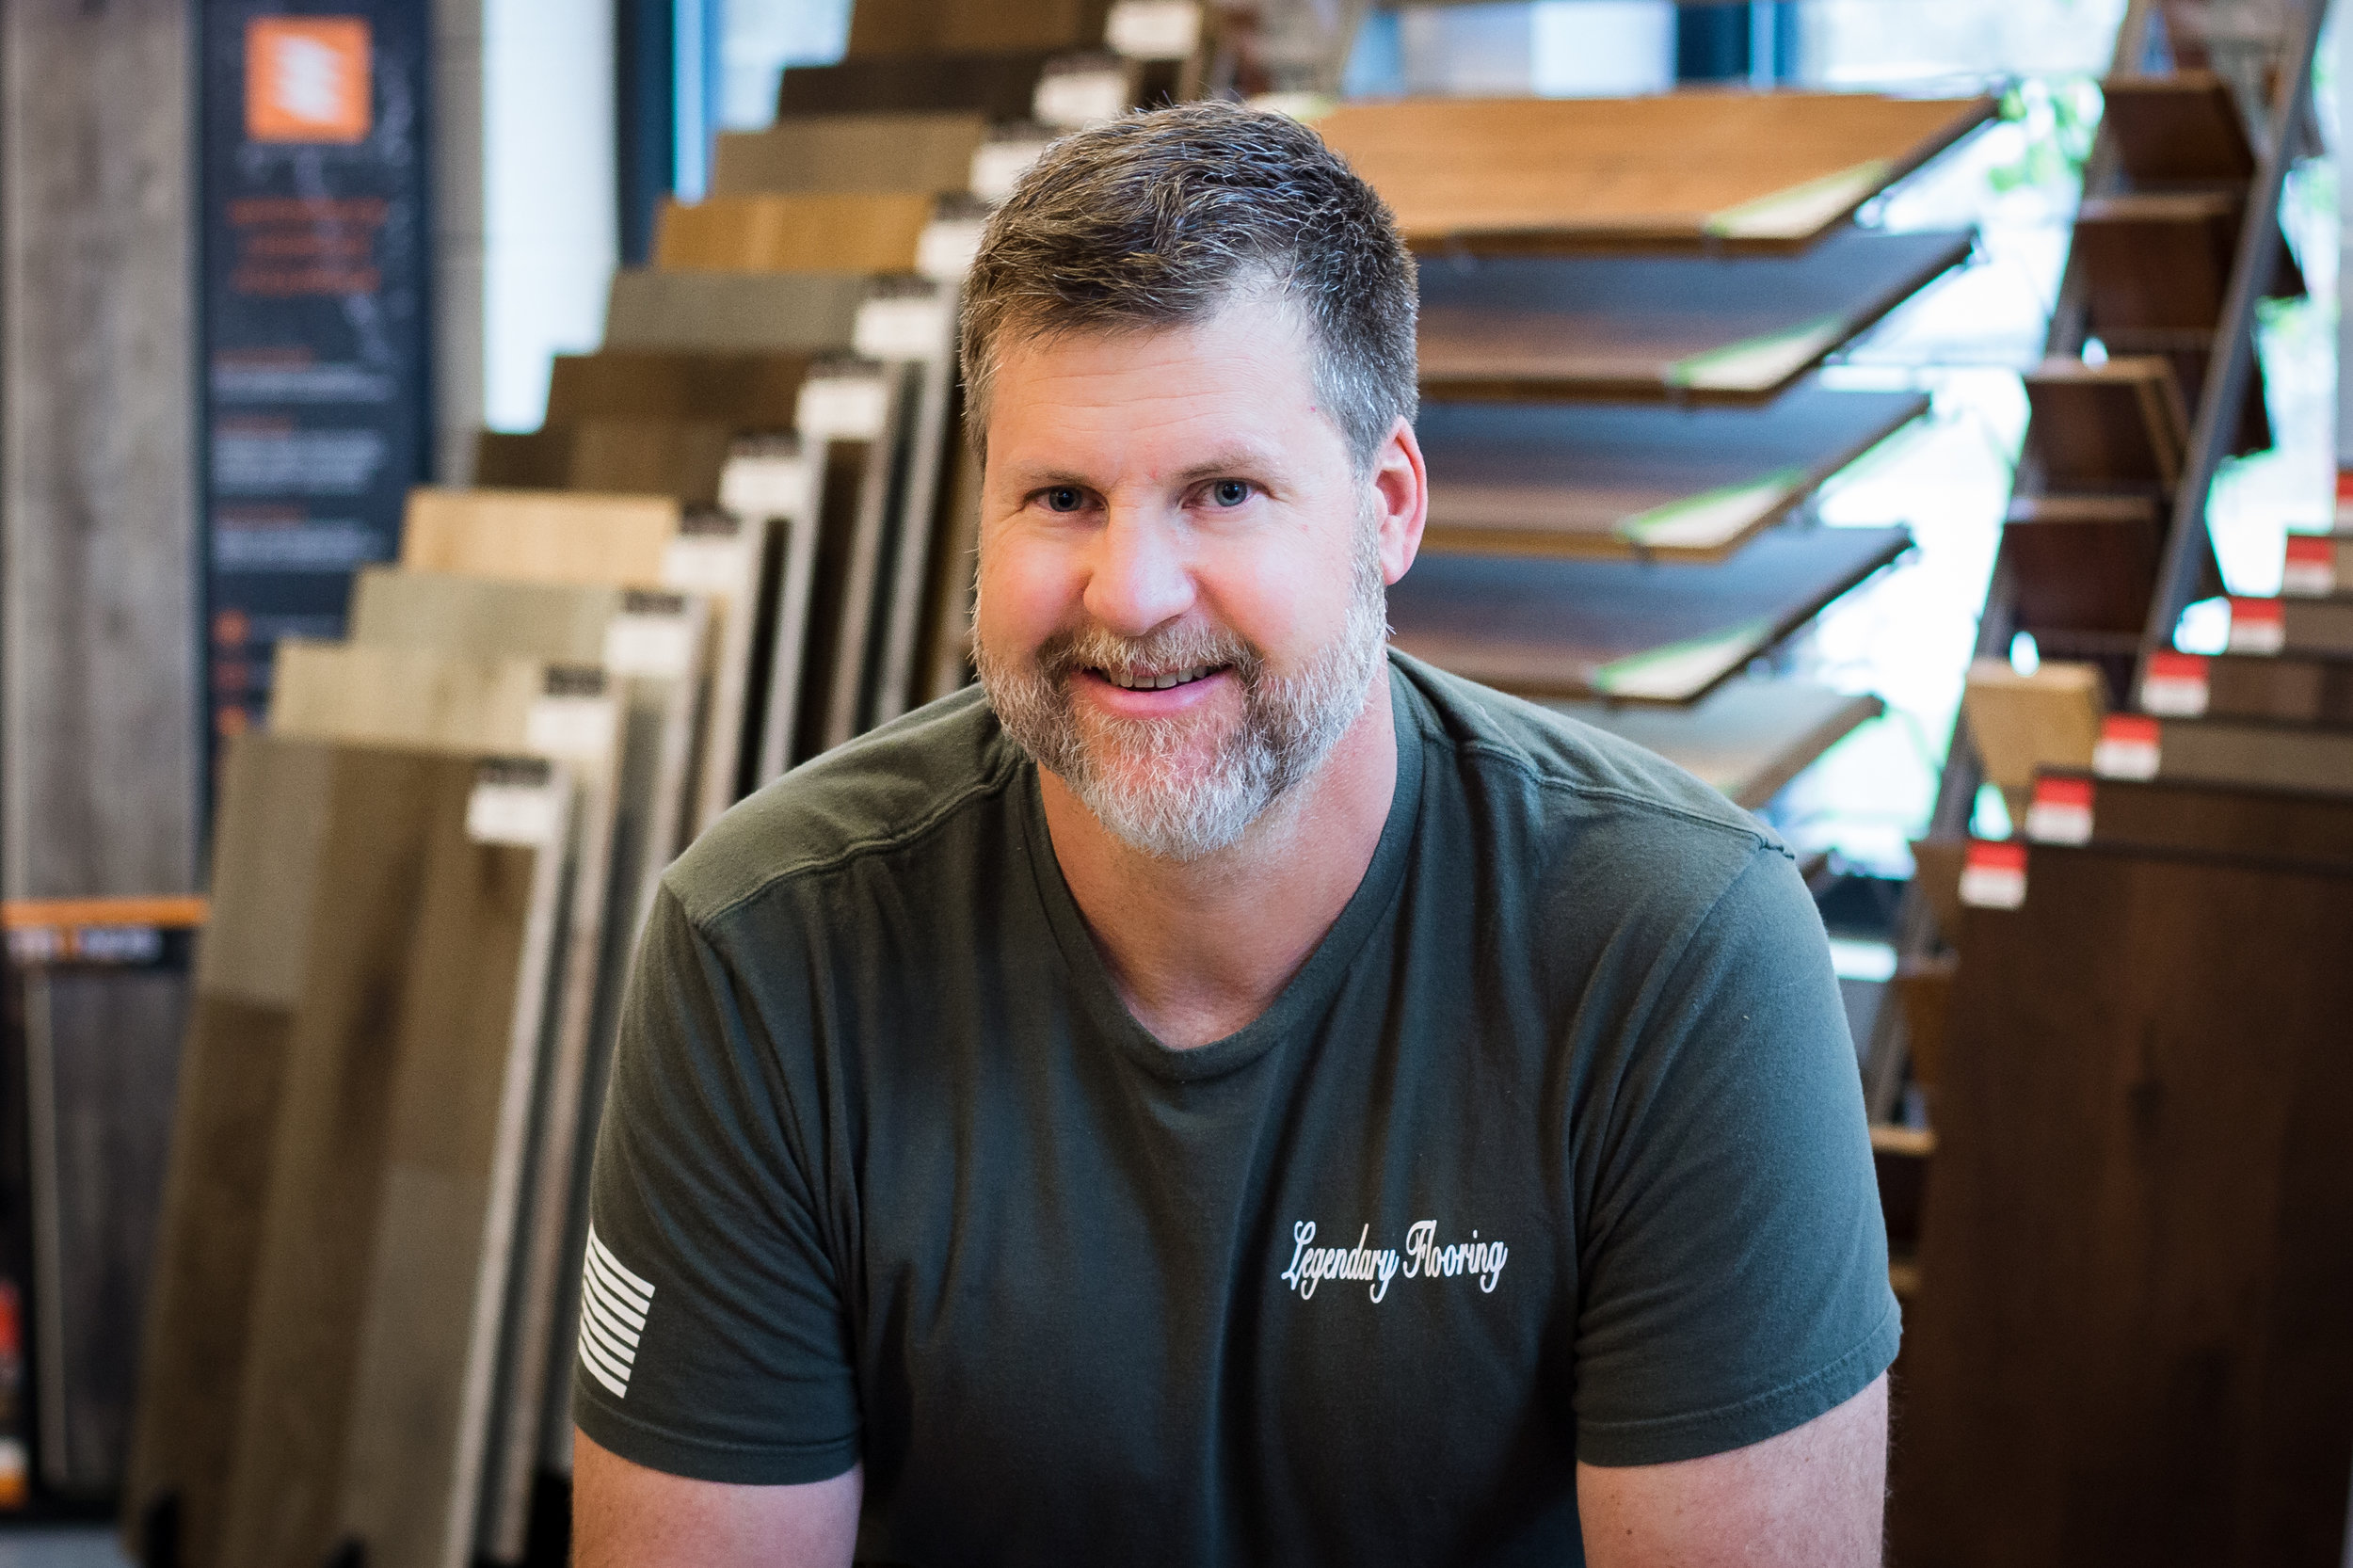 Jess Skarda - Jess Skarda is the owner and founder of Legendary Flooring. He grew up in St. Charles, IL and attended St. Patrick's Catholic School. As a teenager, he learned how to install carpeting with his father and has since added solid and enginereed hardwood to his areas of expertise. He describes himself as very particular and detail-oriented by nature, and always strives for complete customer satisfaction. In his spare time, Jess loves to spend time outdoors snowmobiling and camping with his wife and two children.